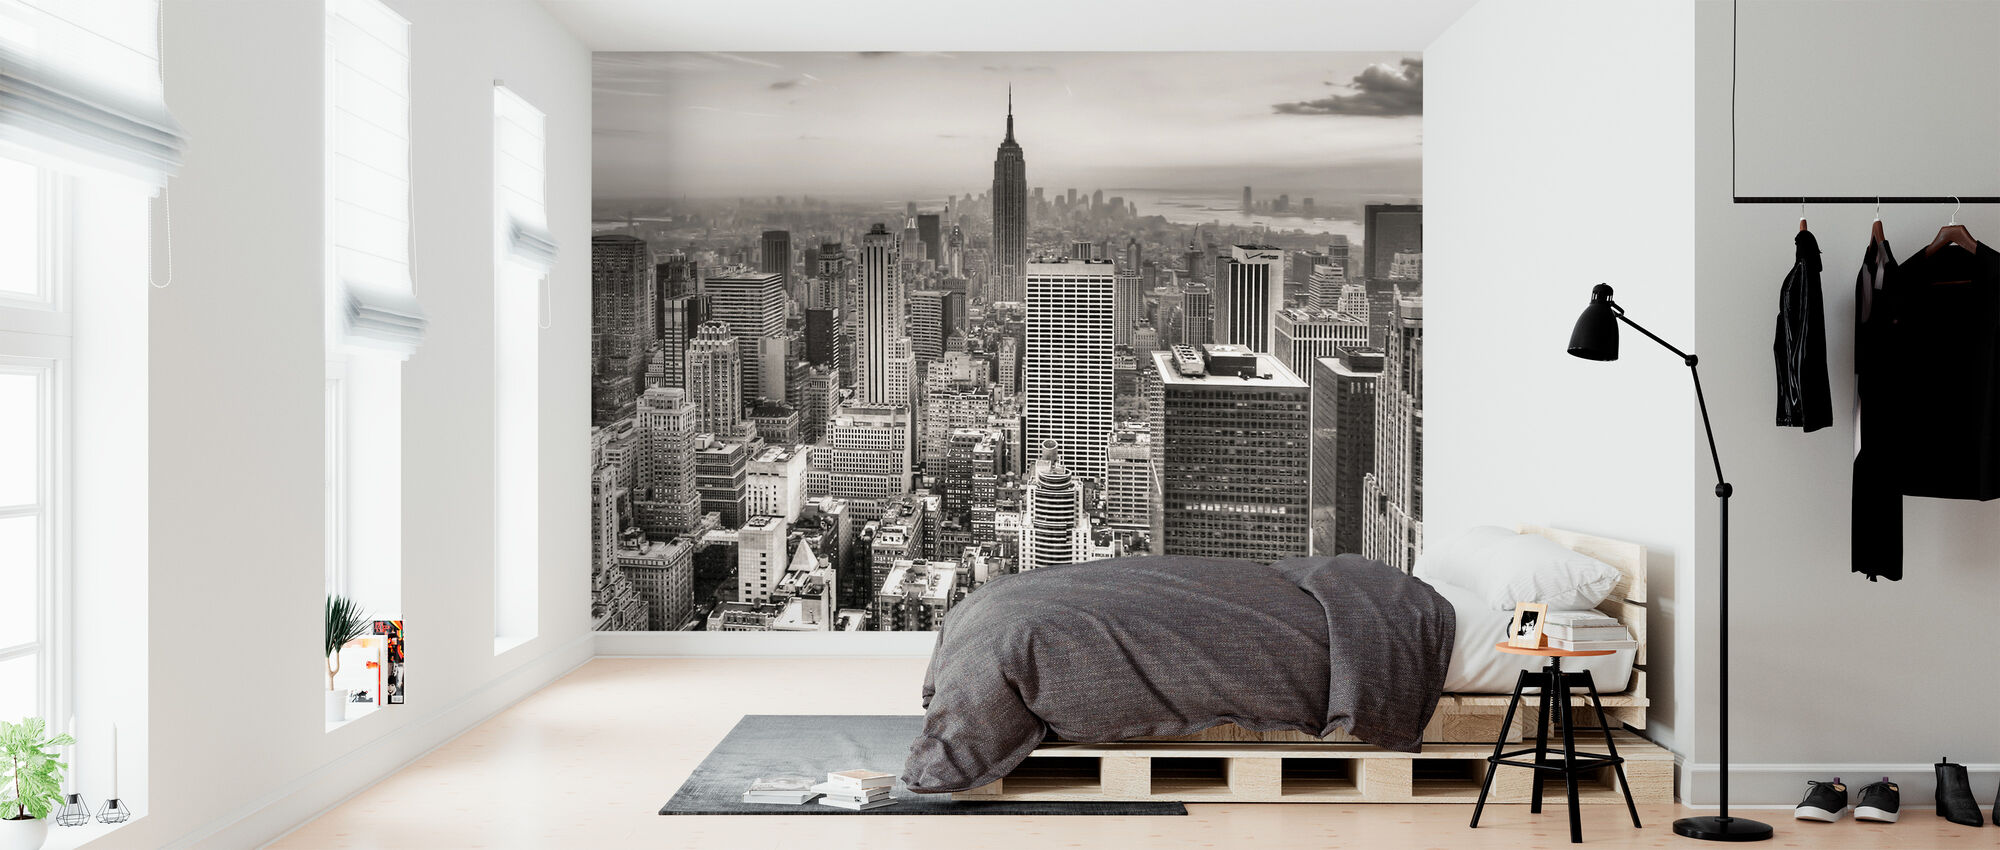 New York City, USA - Wallpaper - Bedroom